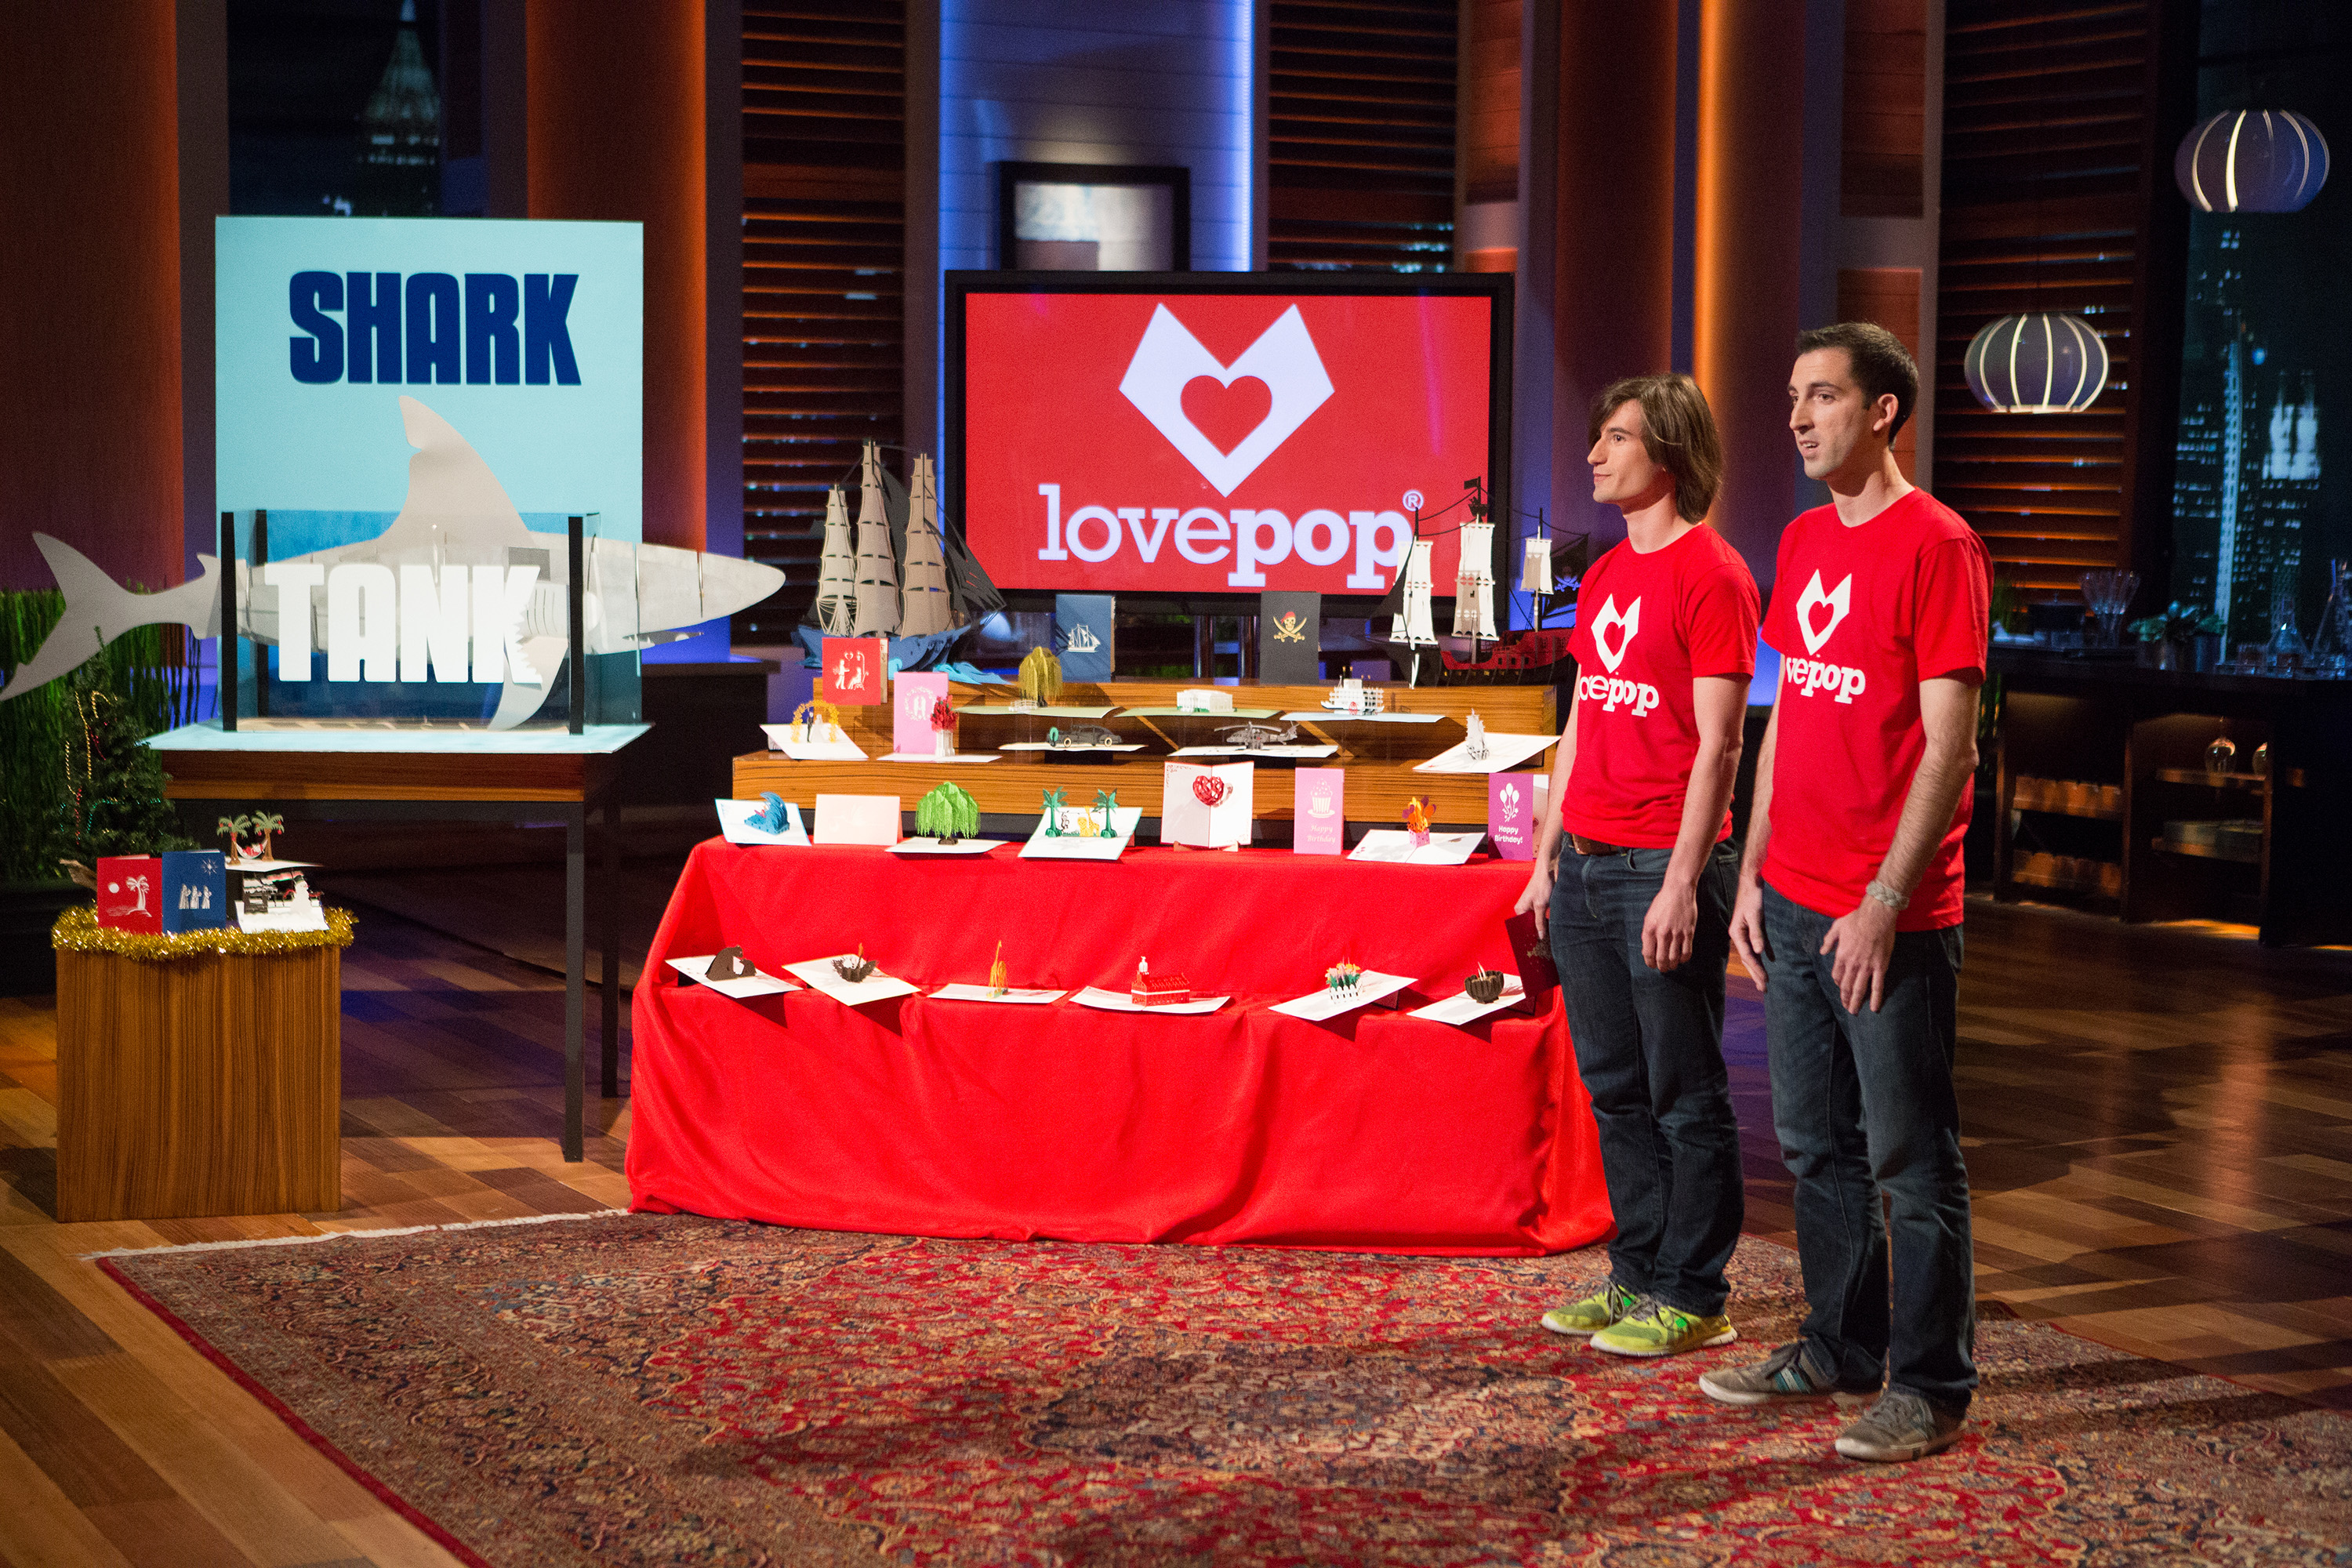 Lovepop on Shark Tank